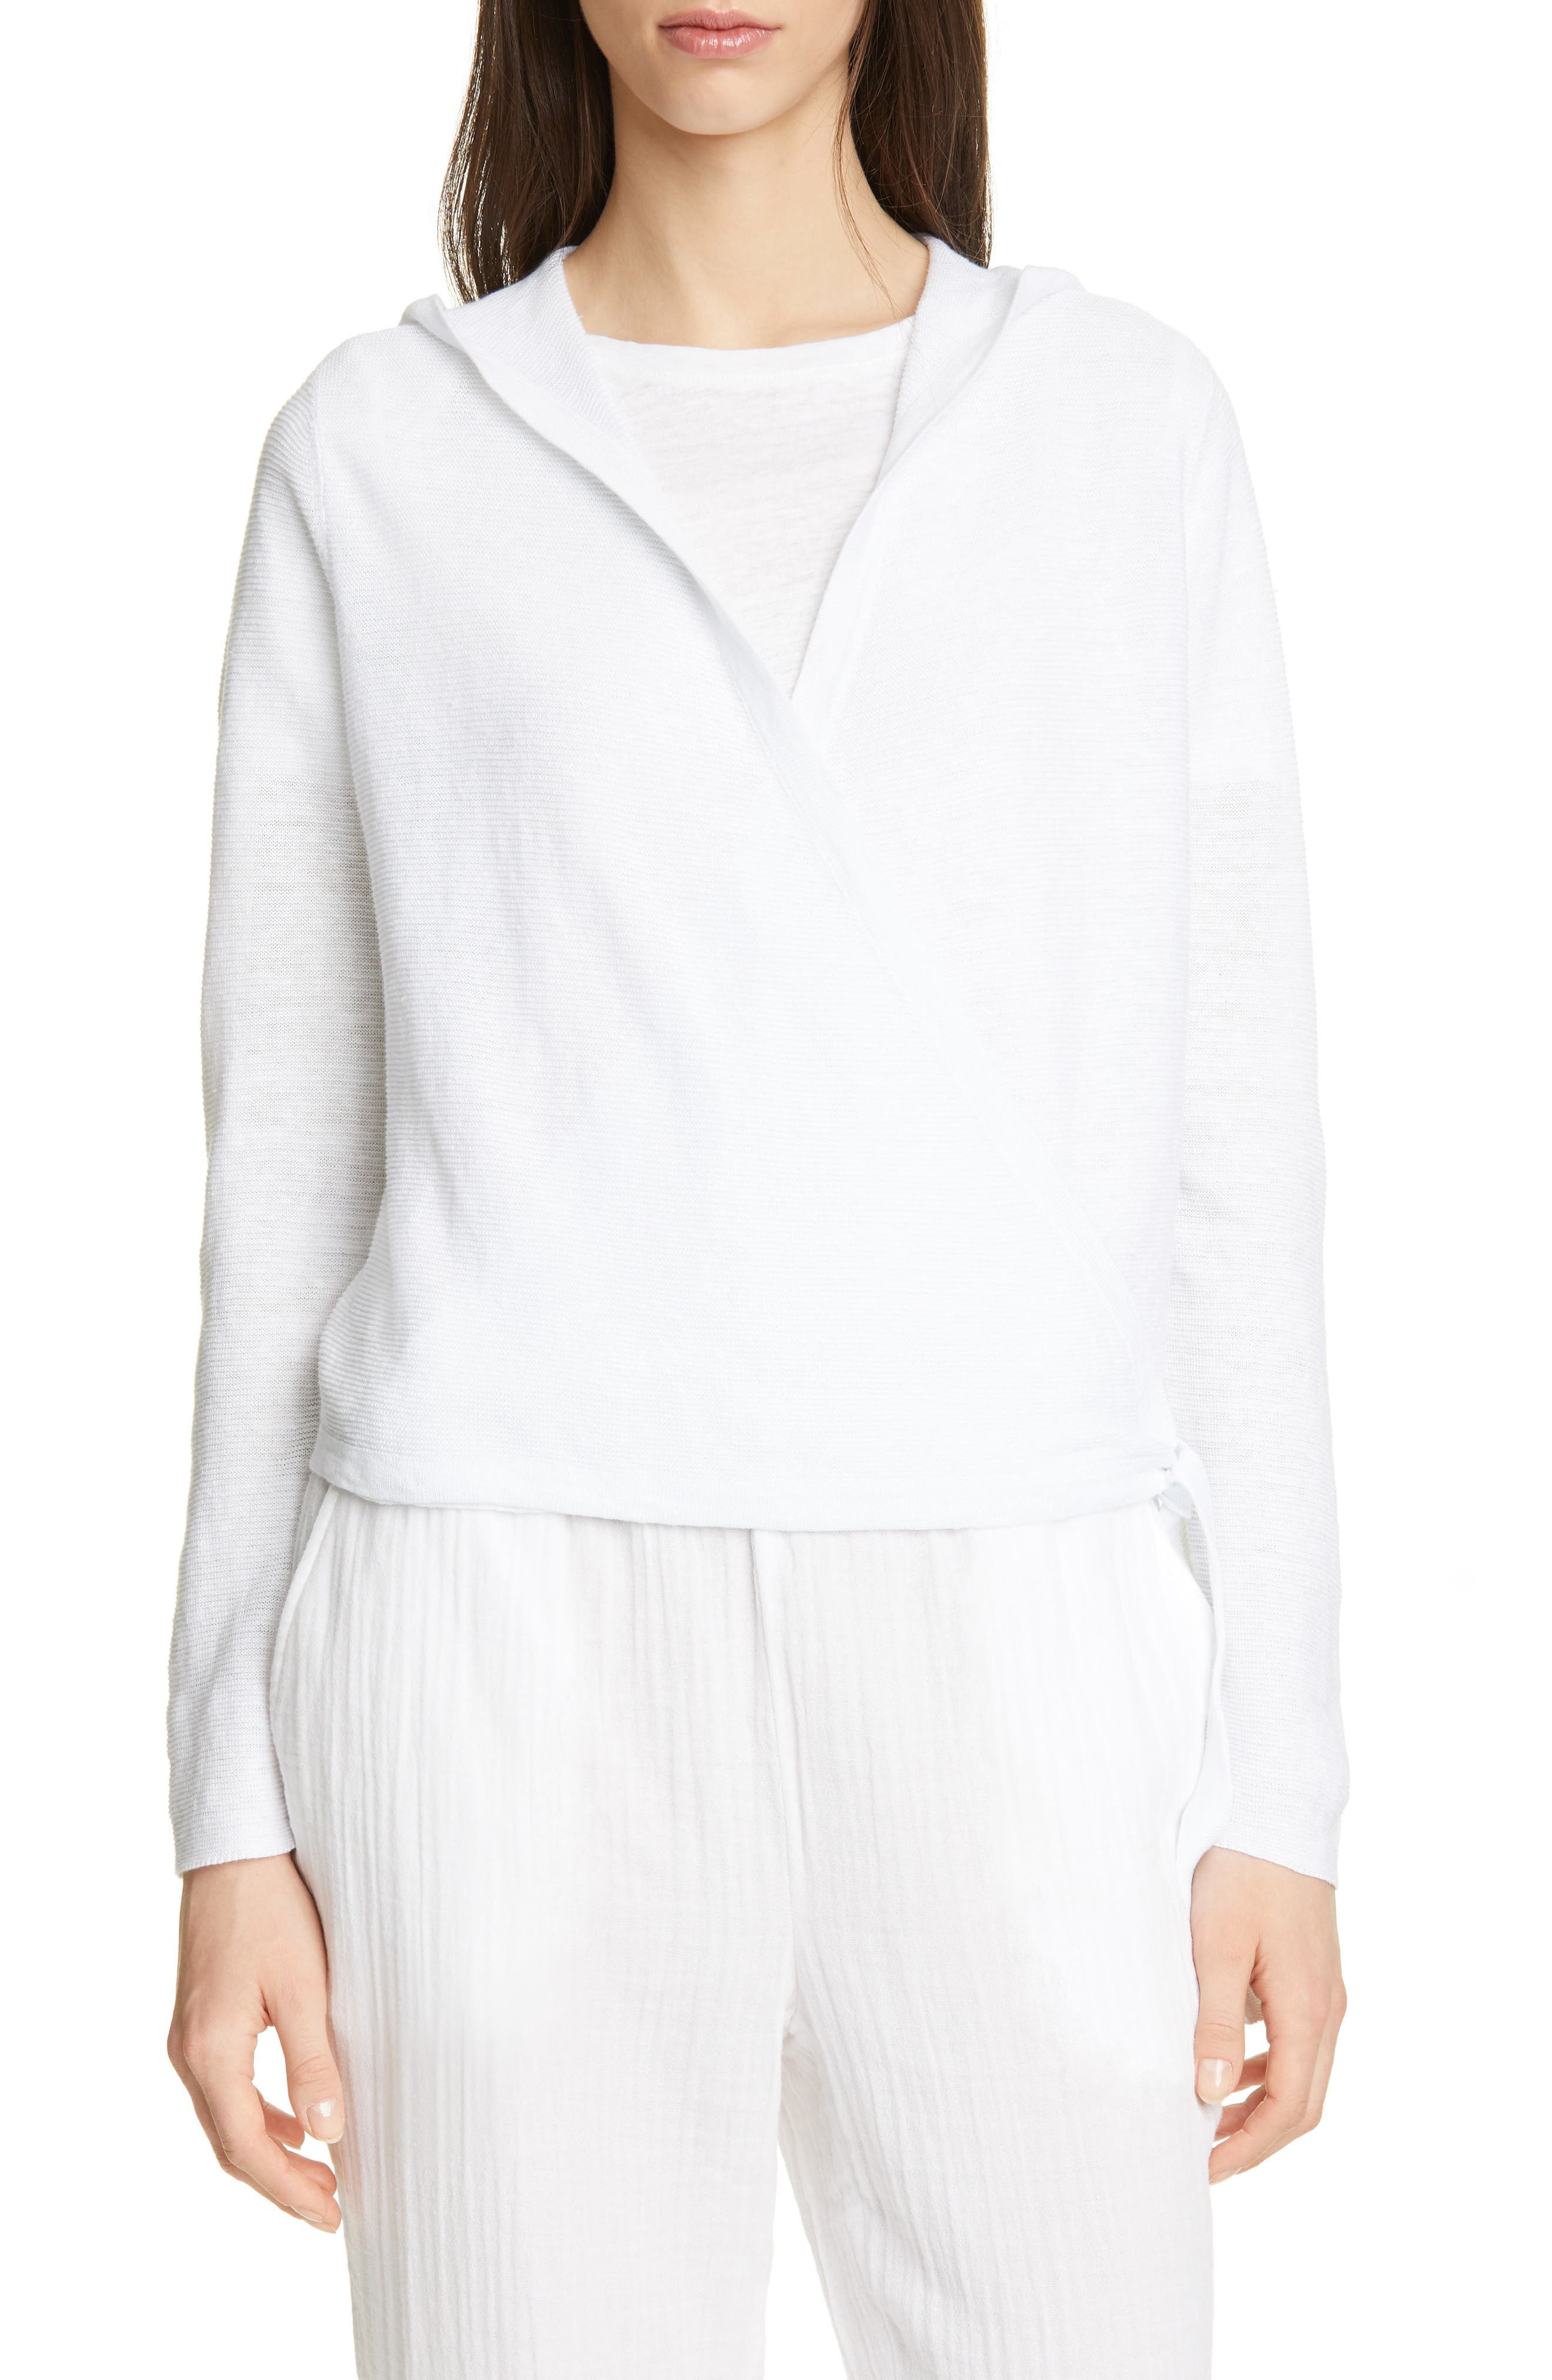 Eileen Fisher Organic Linen Knit Hooded Wrap Cardigan, White